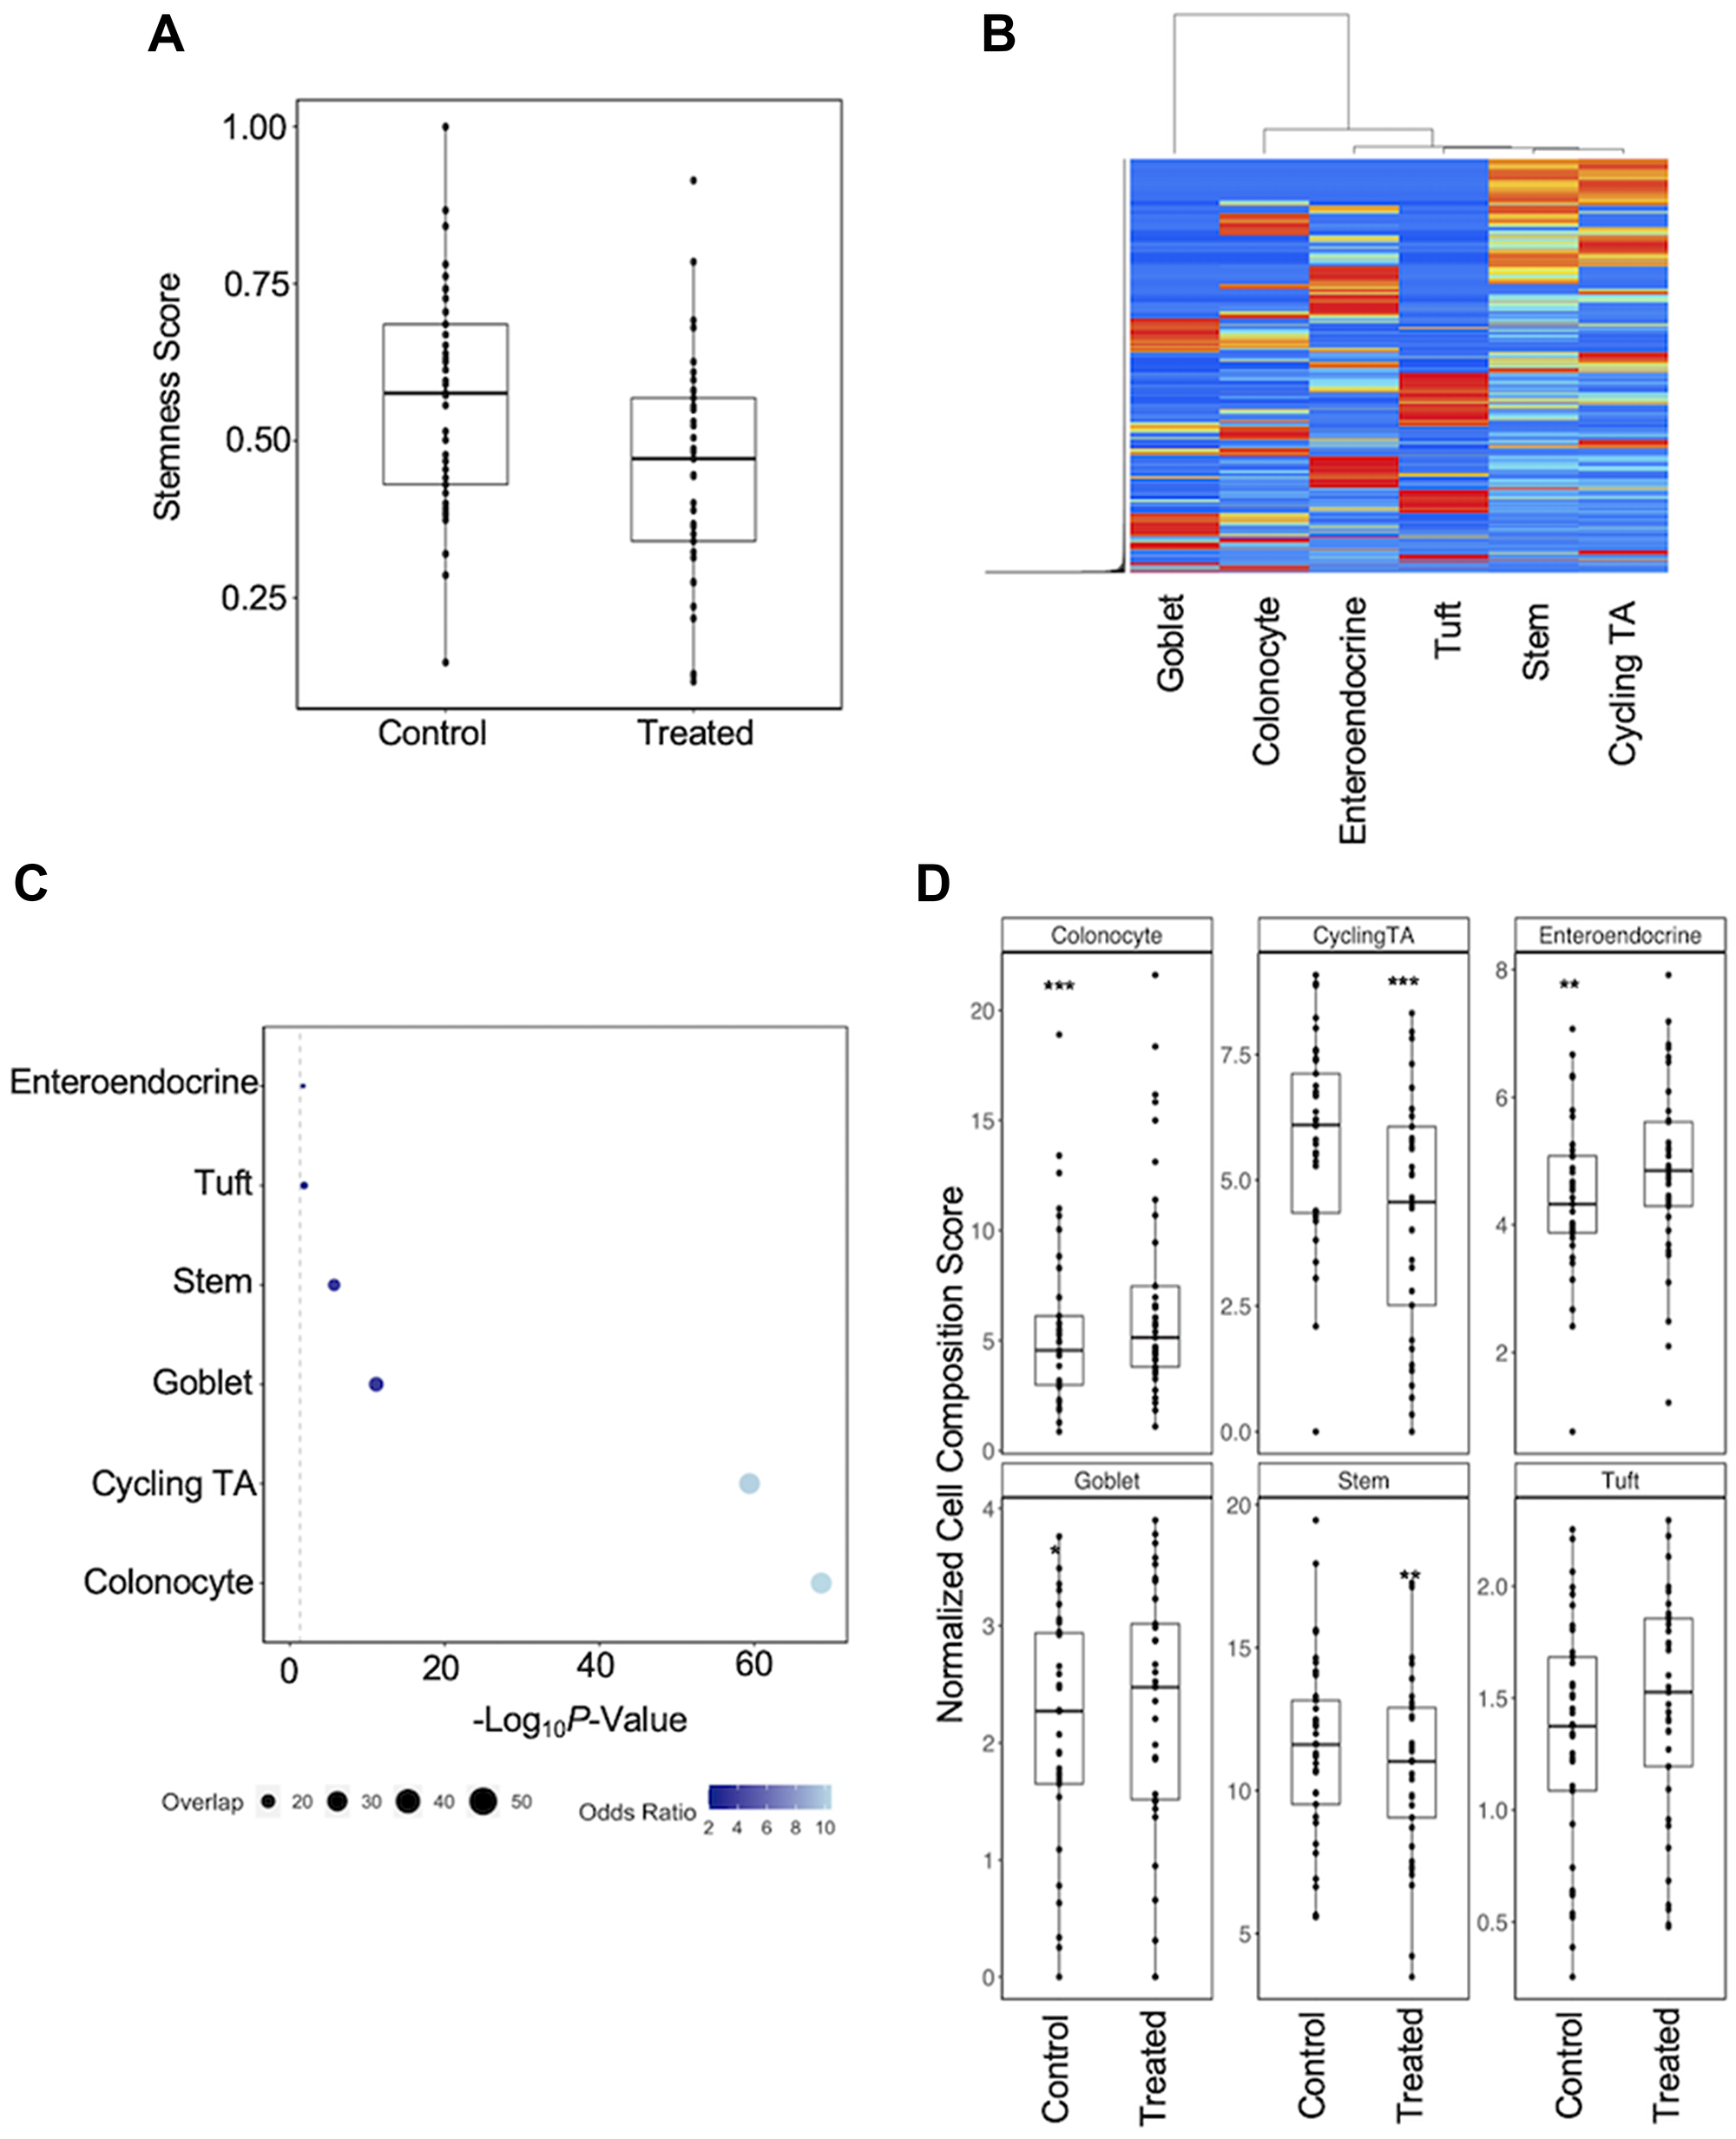 Regression analysis of cell composition differences in response to carcinogen exposure.